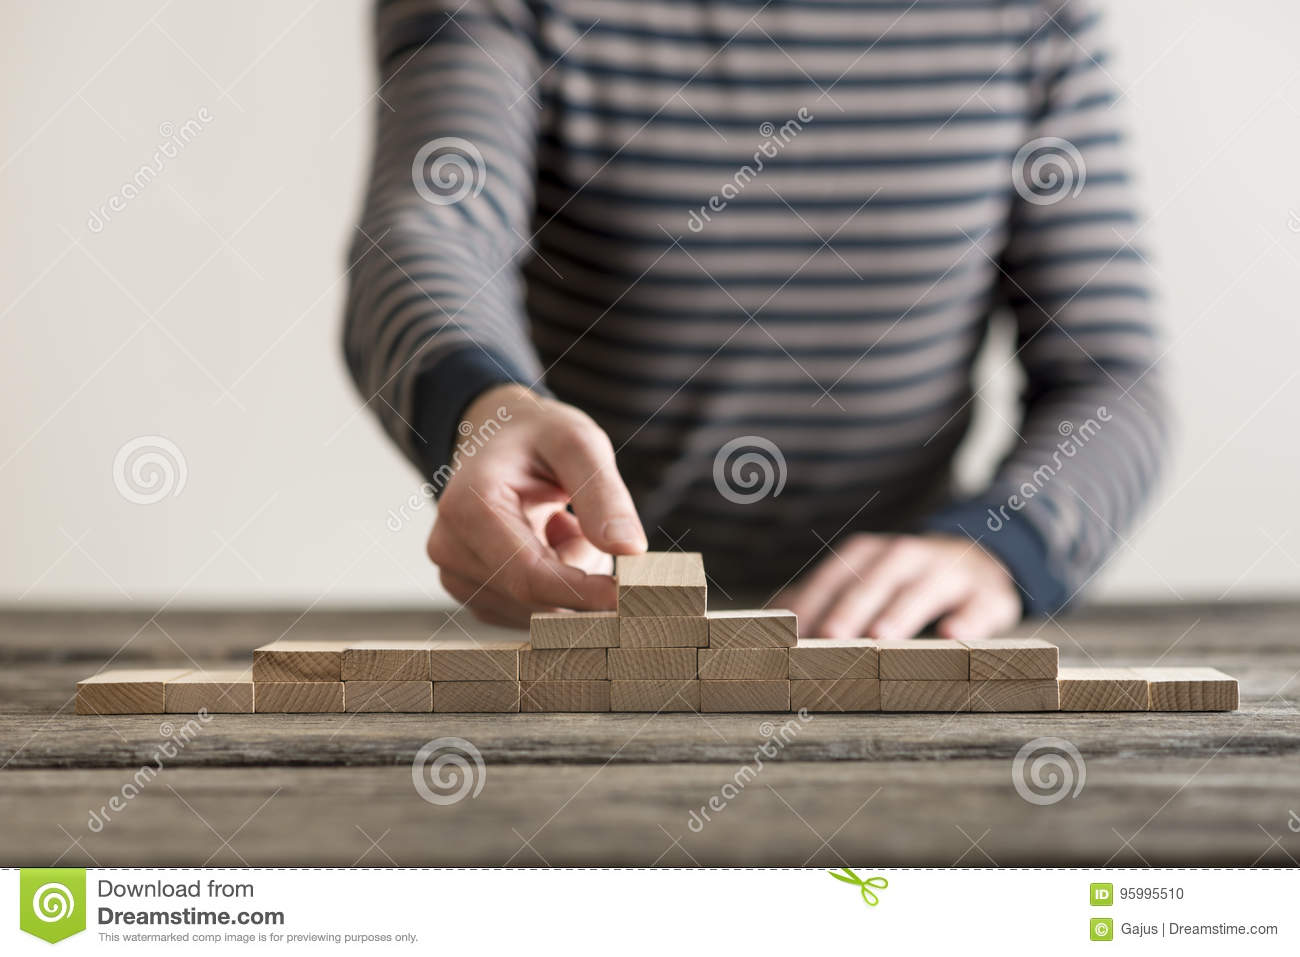 How To Make A Pyramid Out Of Wooden Blocks